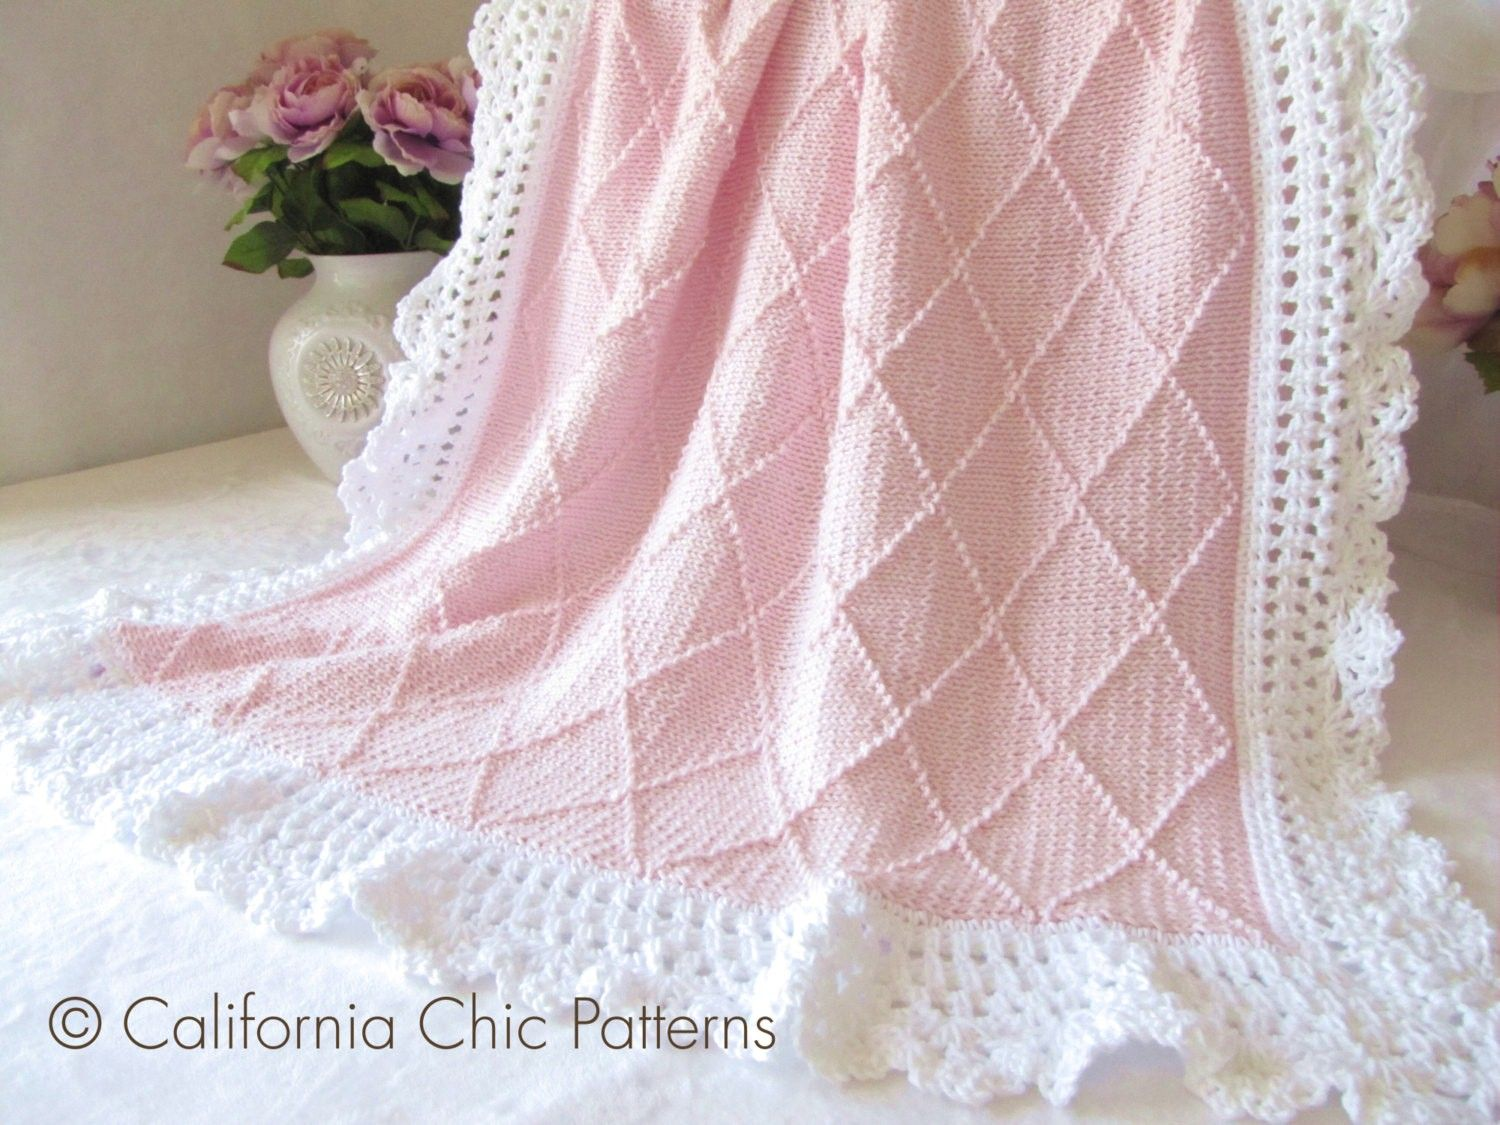 free knitting patterns for baby blankets pinterest | My Crochet ...